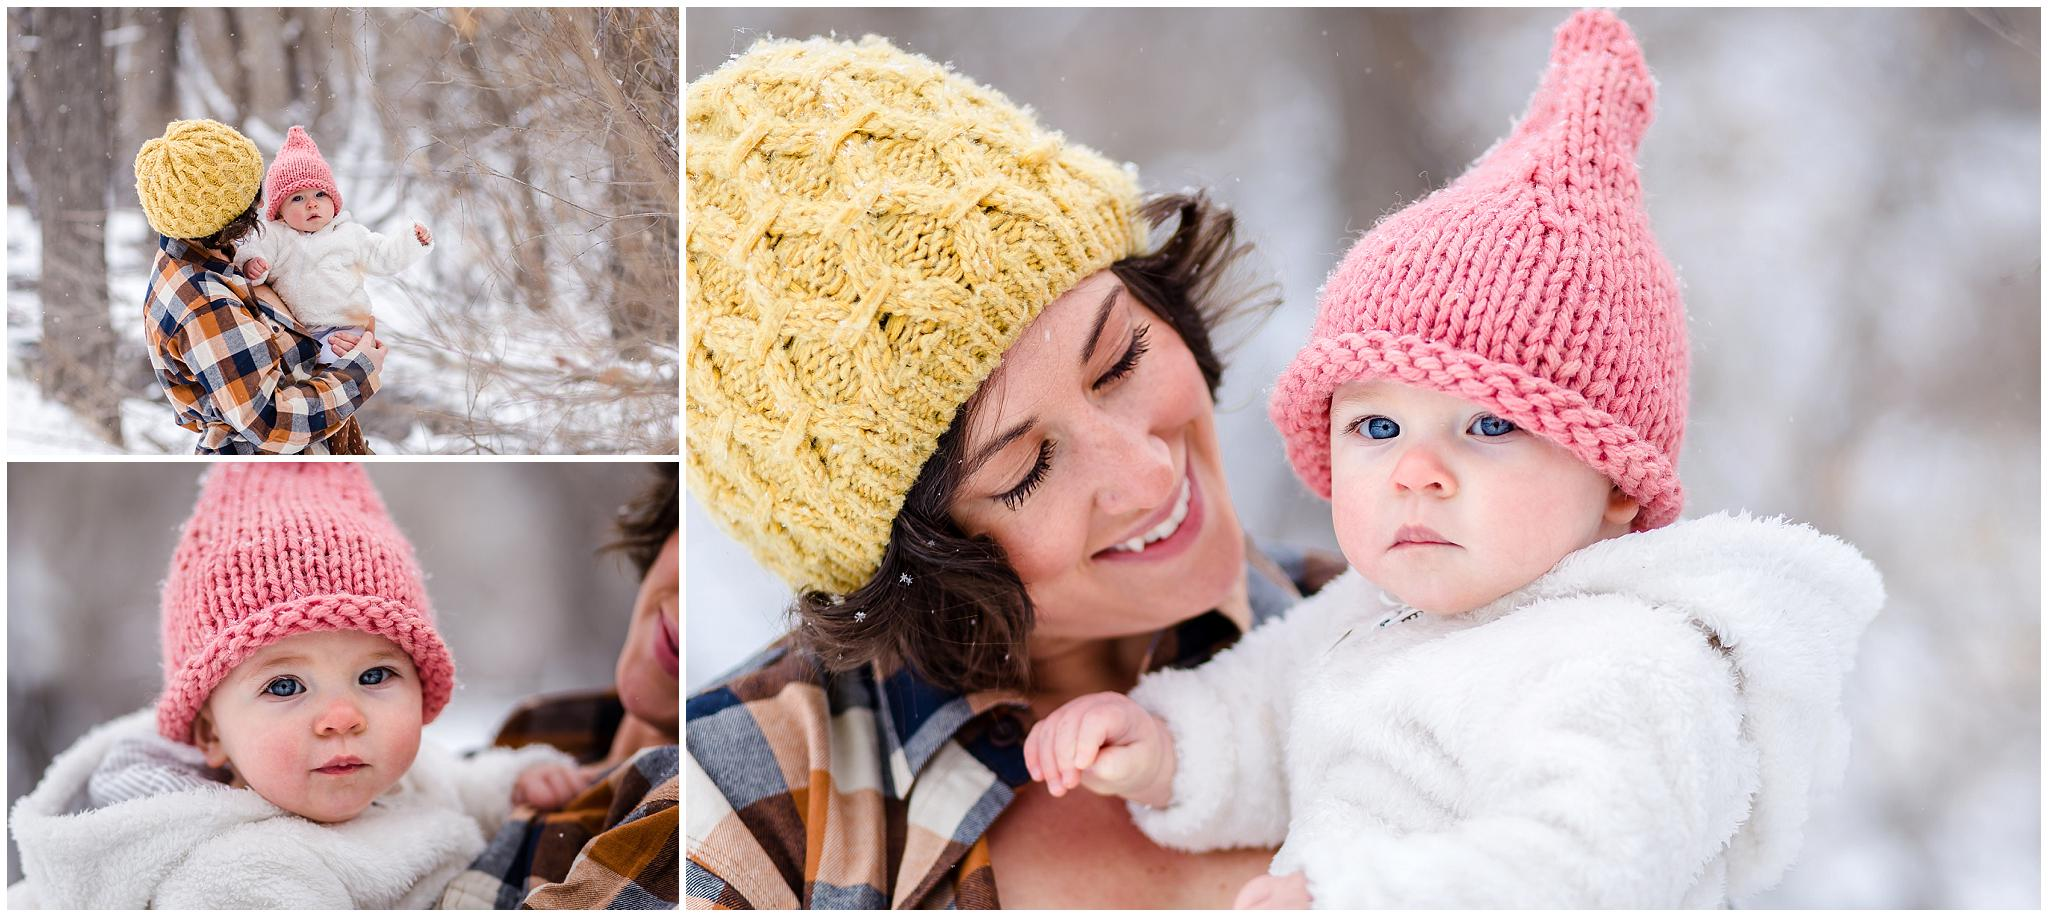 Artistic outside breastfeeding in nature photos in Colorado